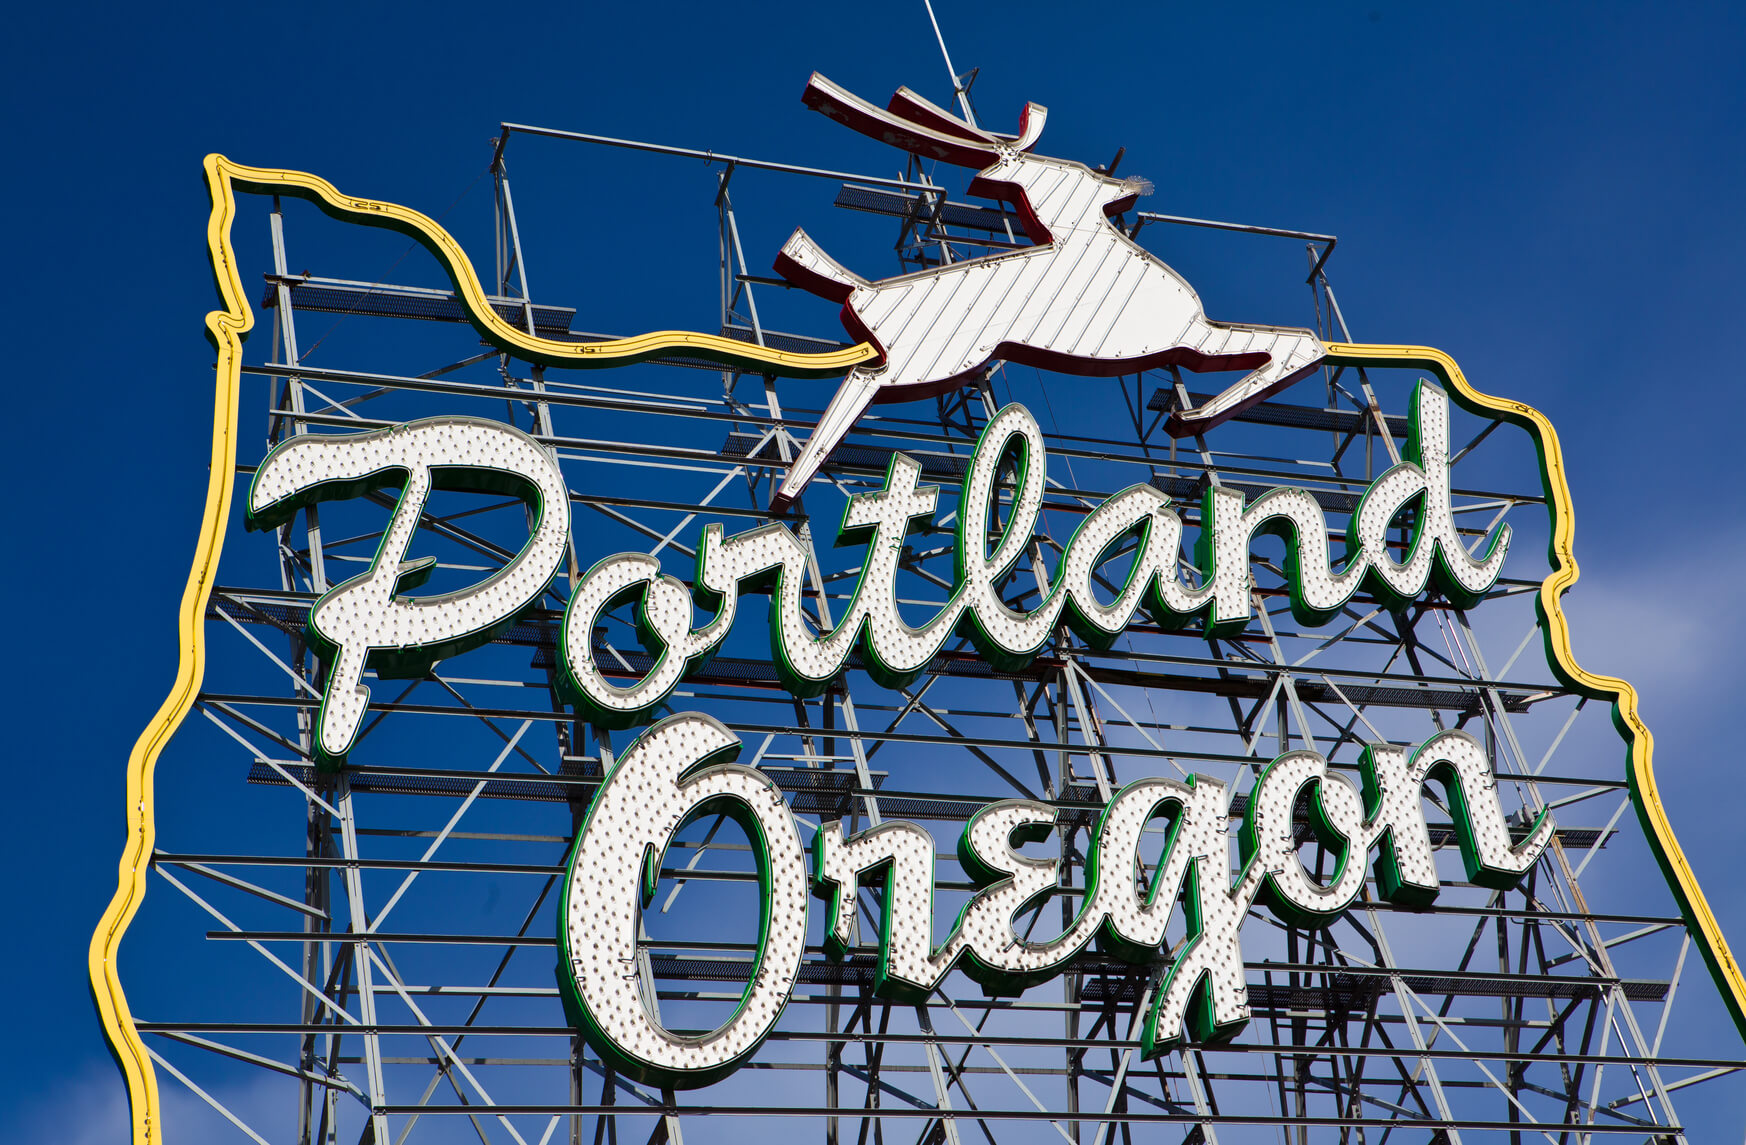 Inverness, Scotland to Portland, Oregon for only £229 roundtrip